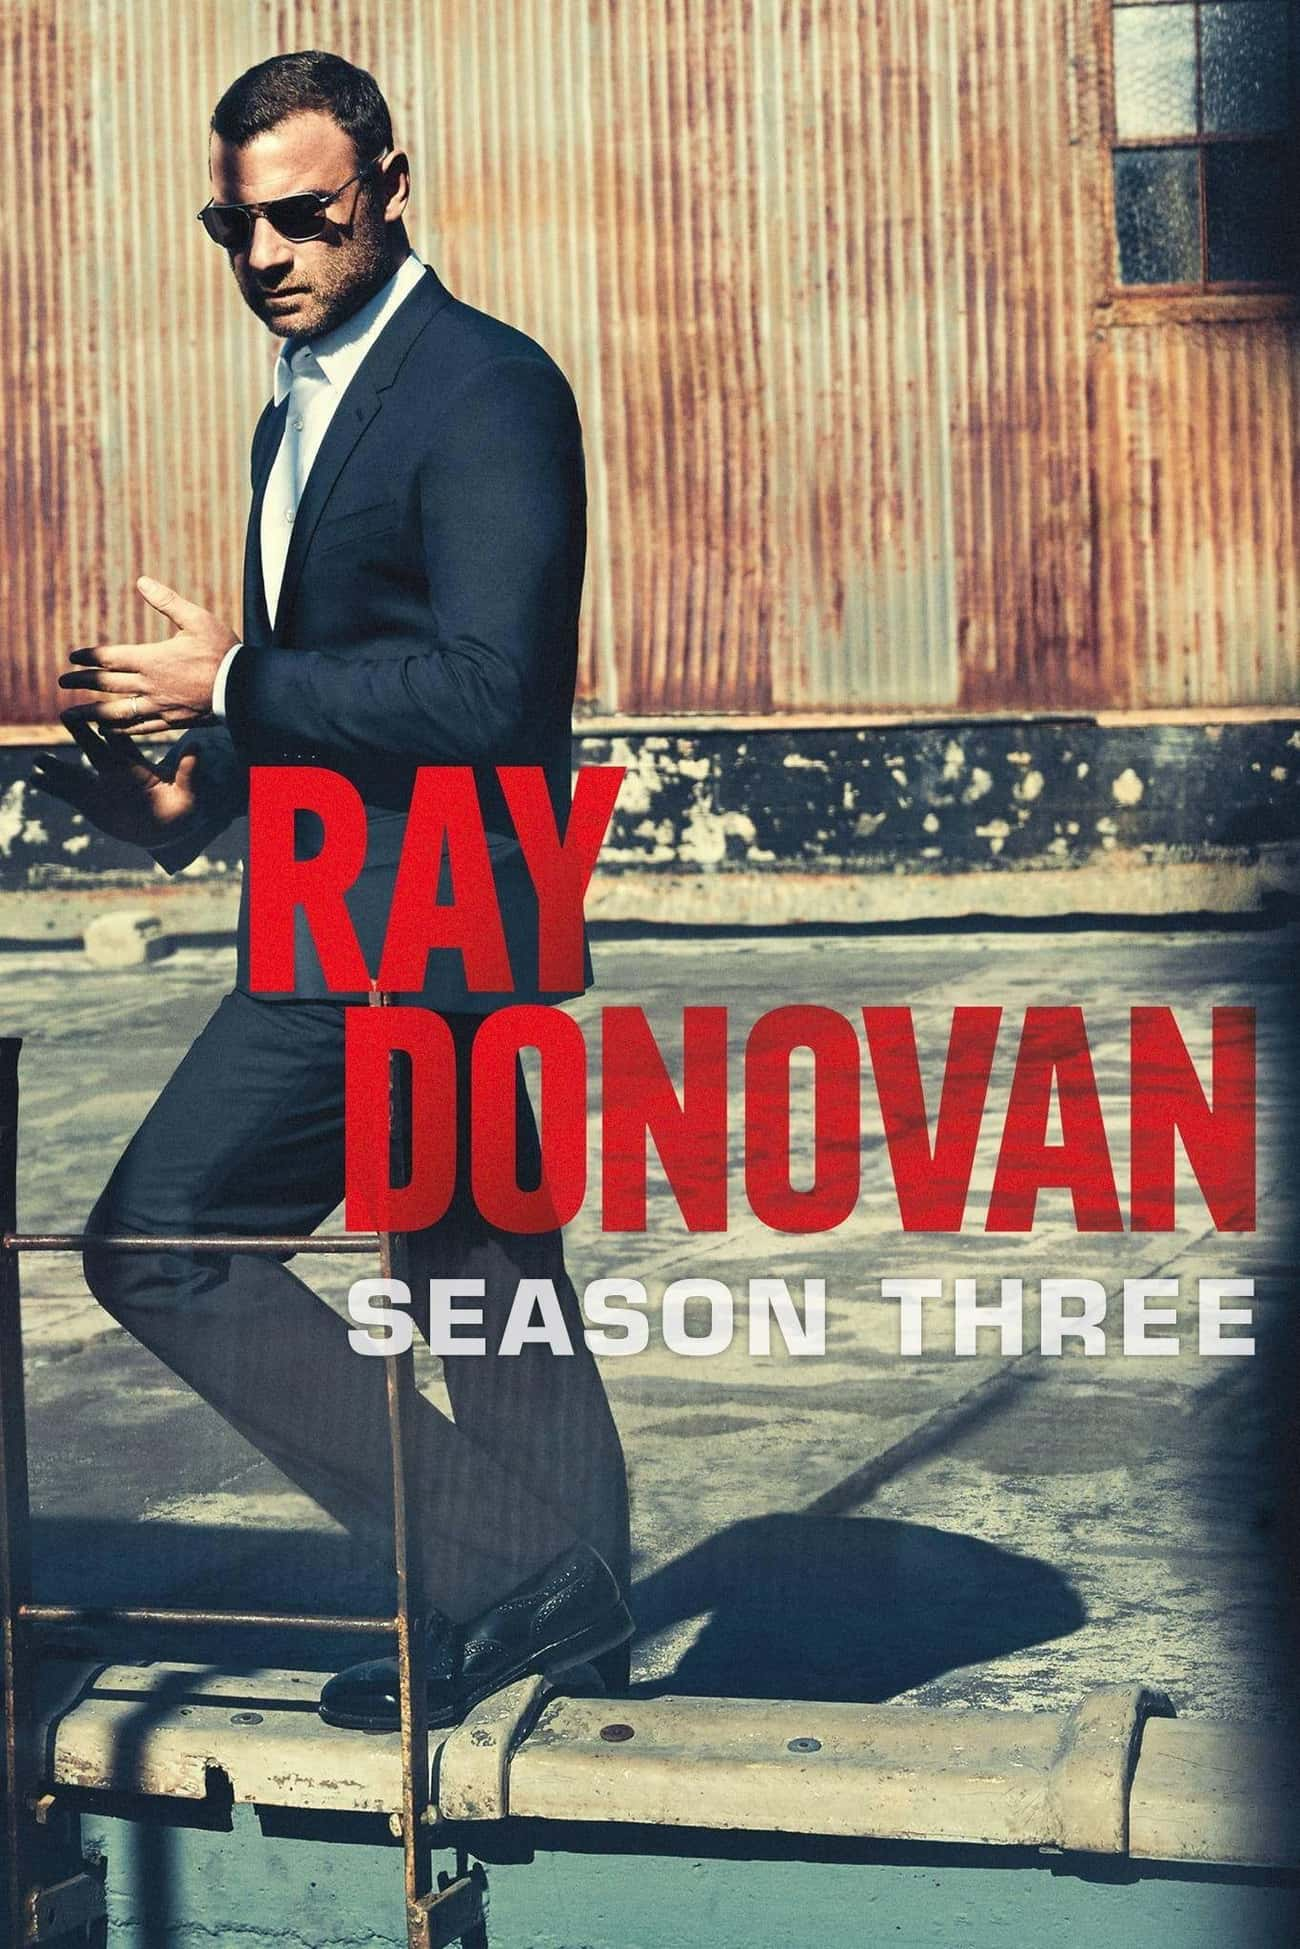 Ray Donovan - Season 3 is listed (or ranked) 3 on the list Ranking the Best Seasons of 'Ray Donovan'